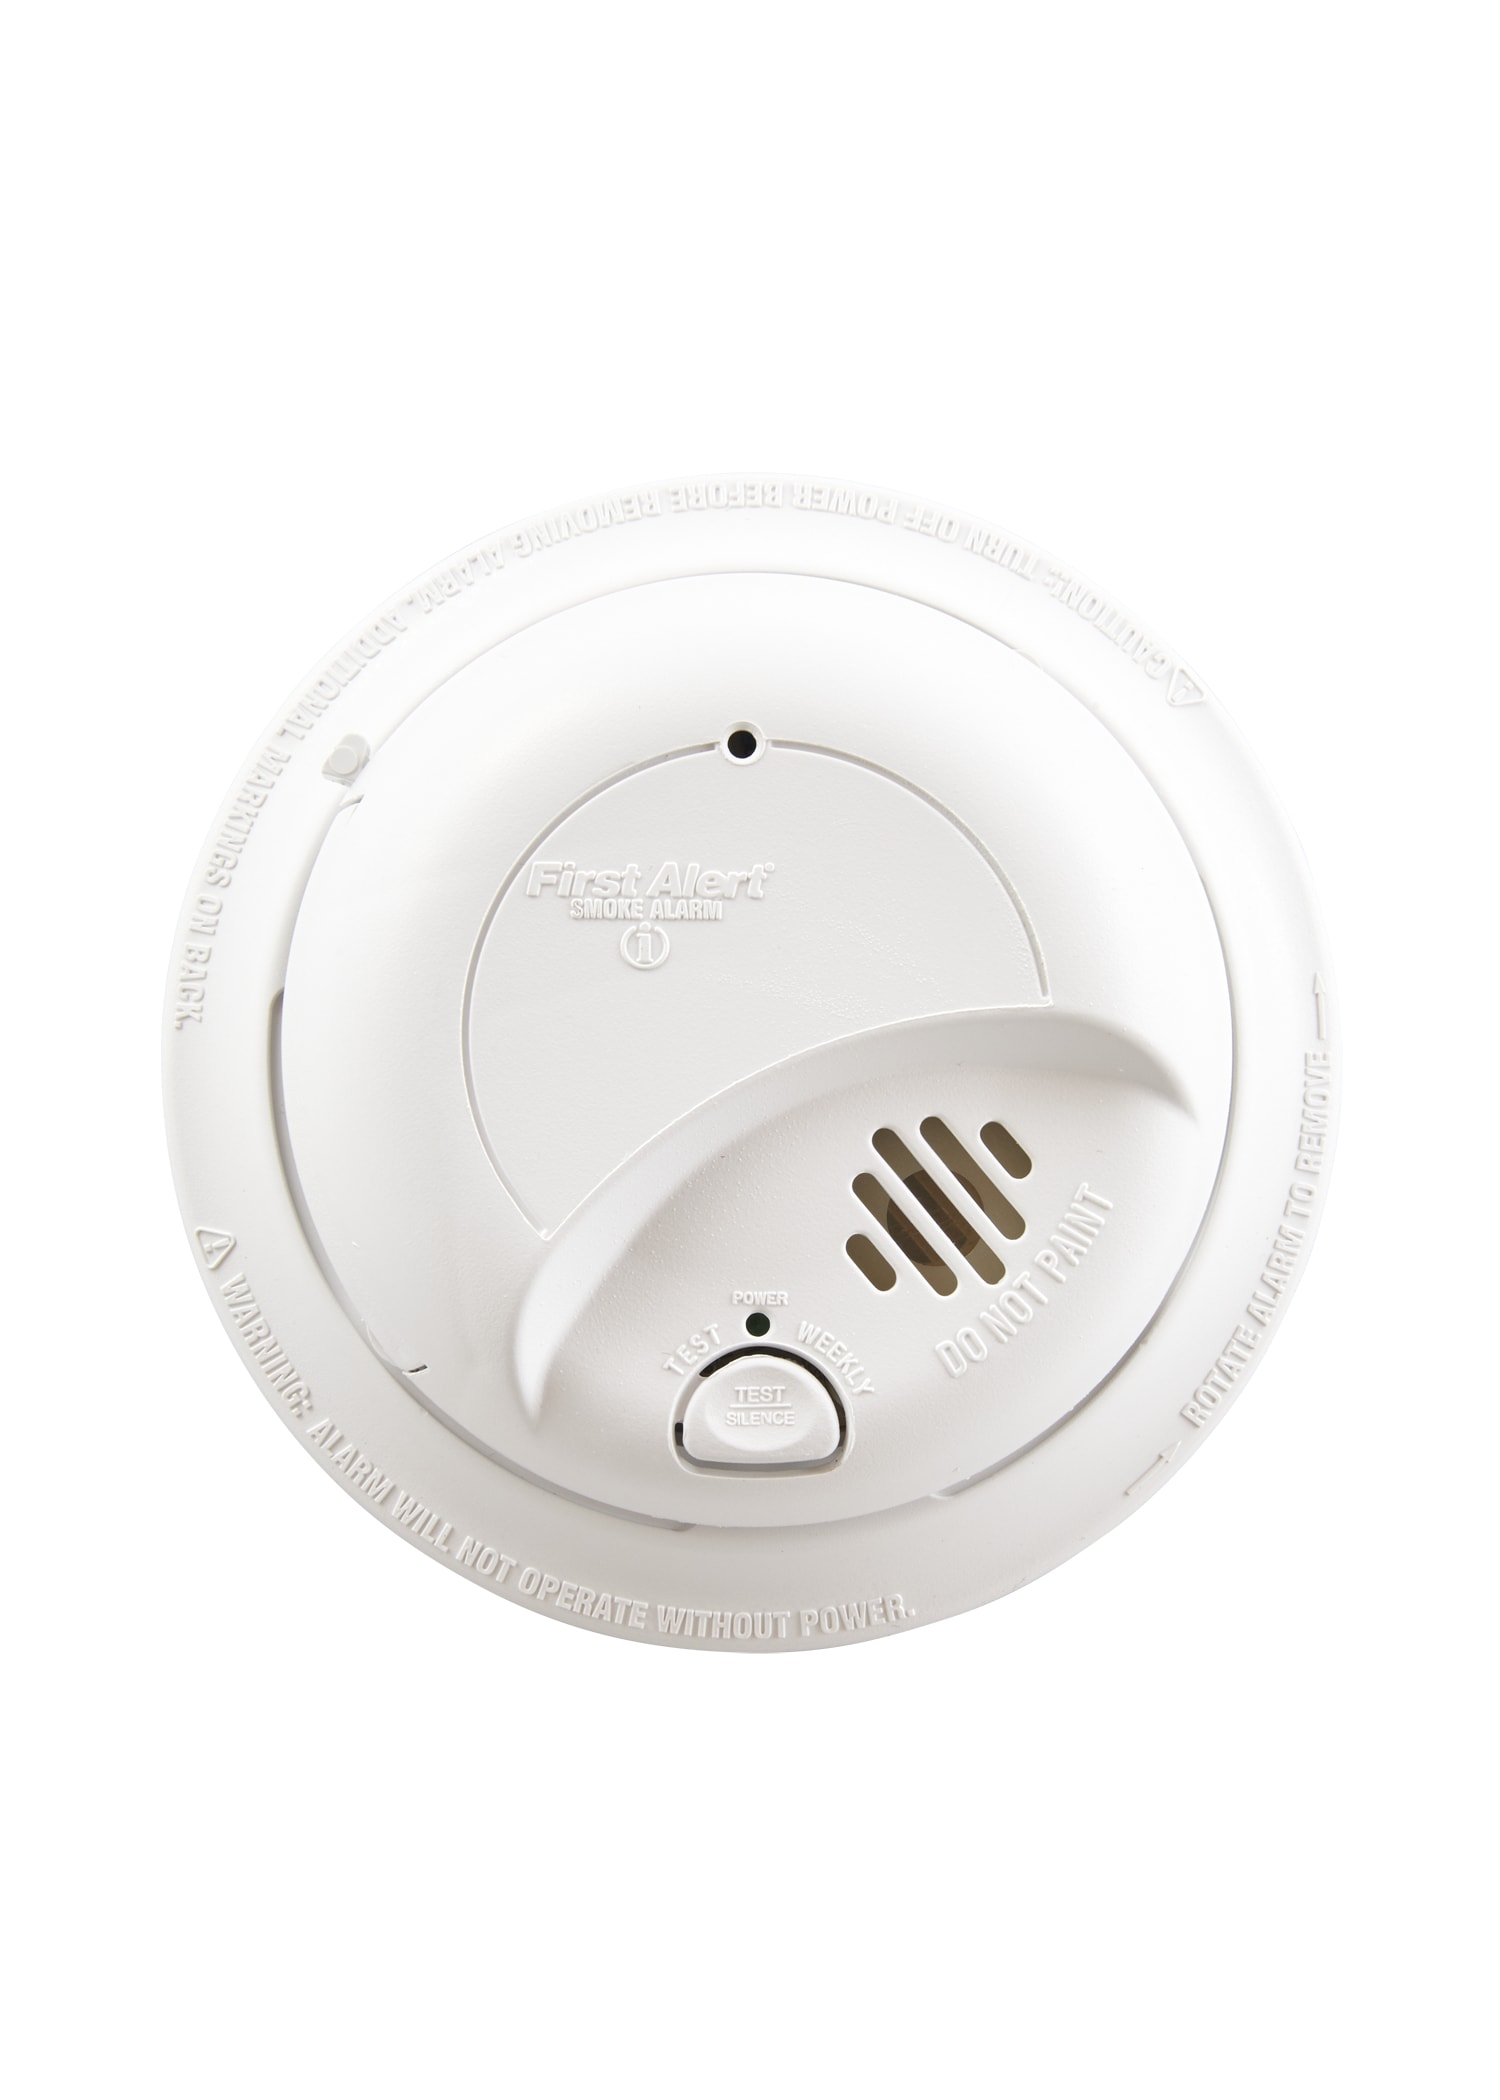 First Alert Sa9120bpcn 120v Ac Hardwired Smoke Alarm With Adapter Firex Wiring Diagram On Kidde Plugs